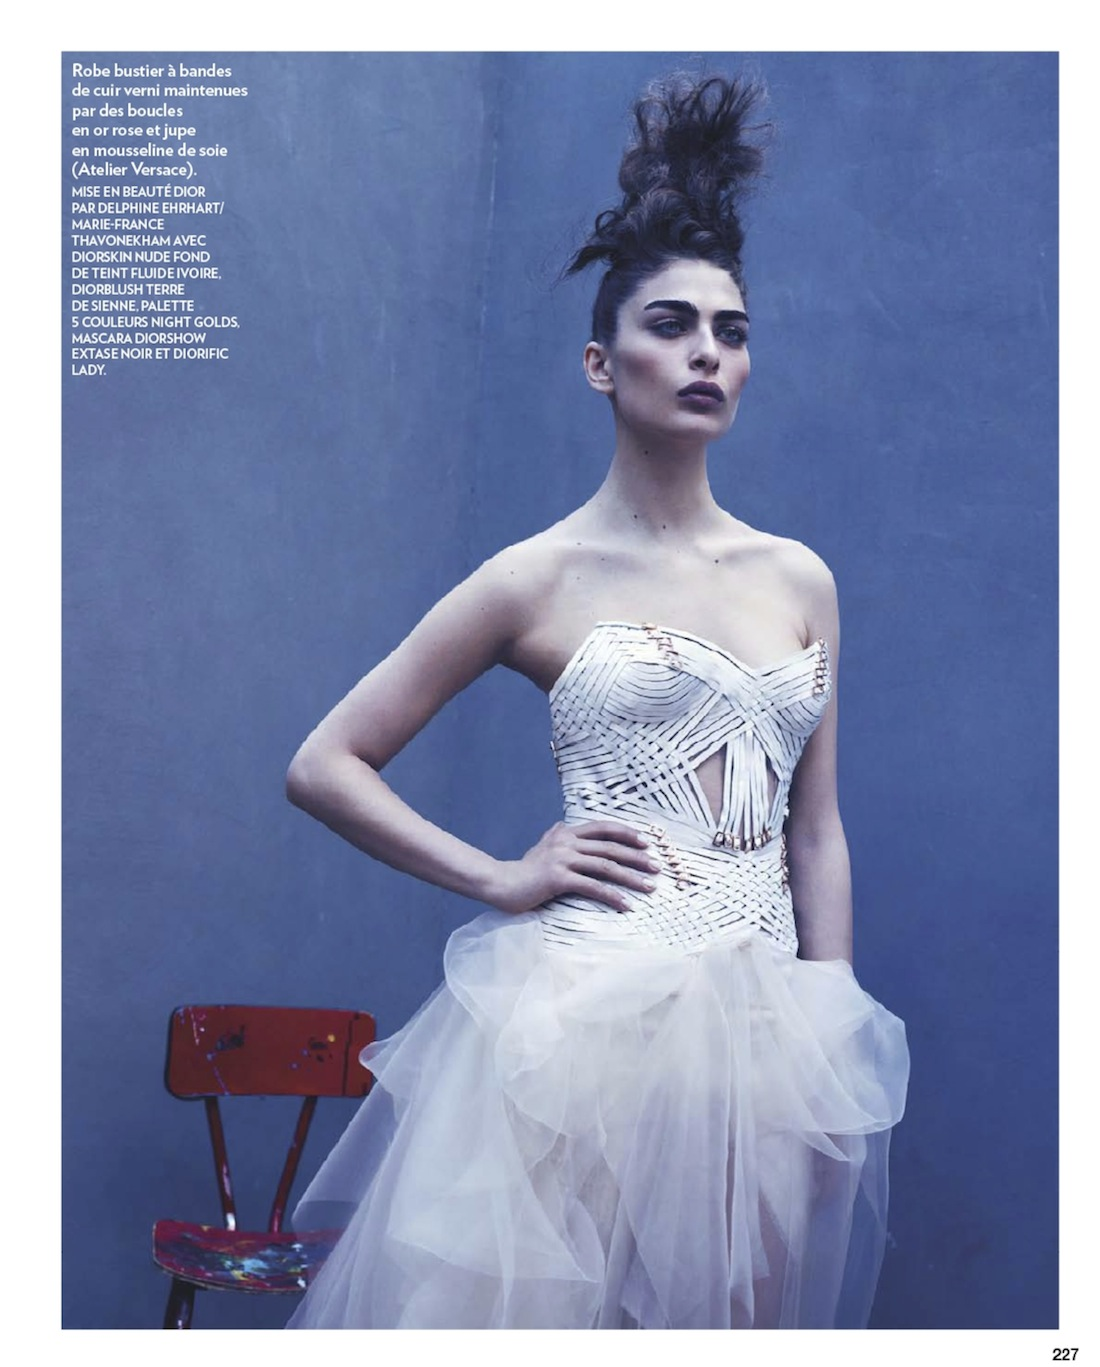 reve de couture etuna vashakidze by max cardelli for marie claire france december 2012 visual. Black Bedroom Furniture Sets. Home Design Ideas